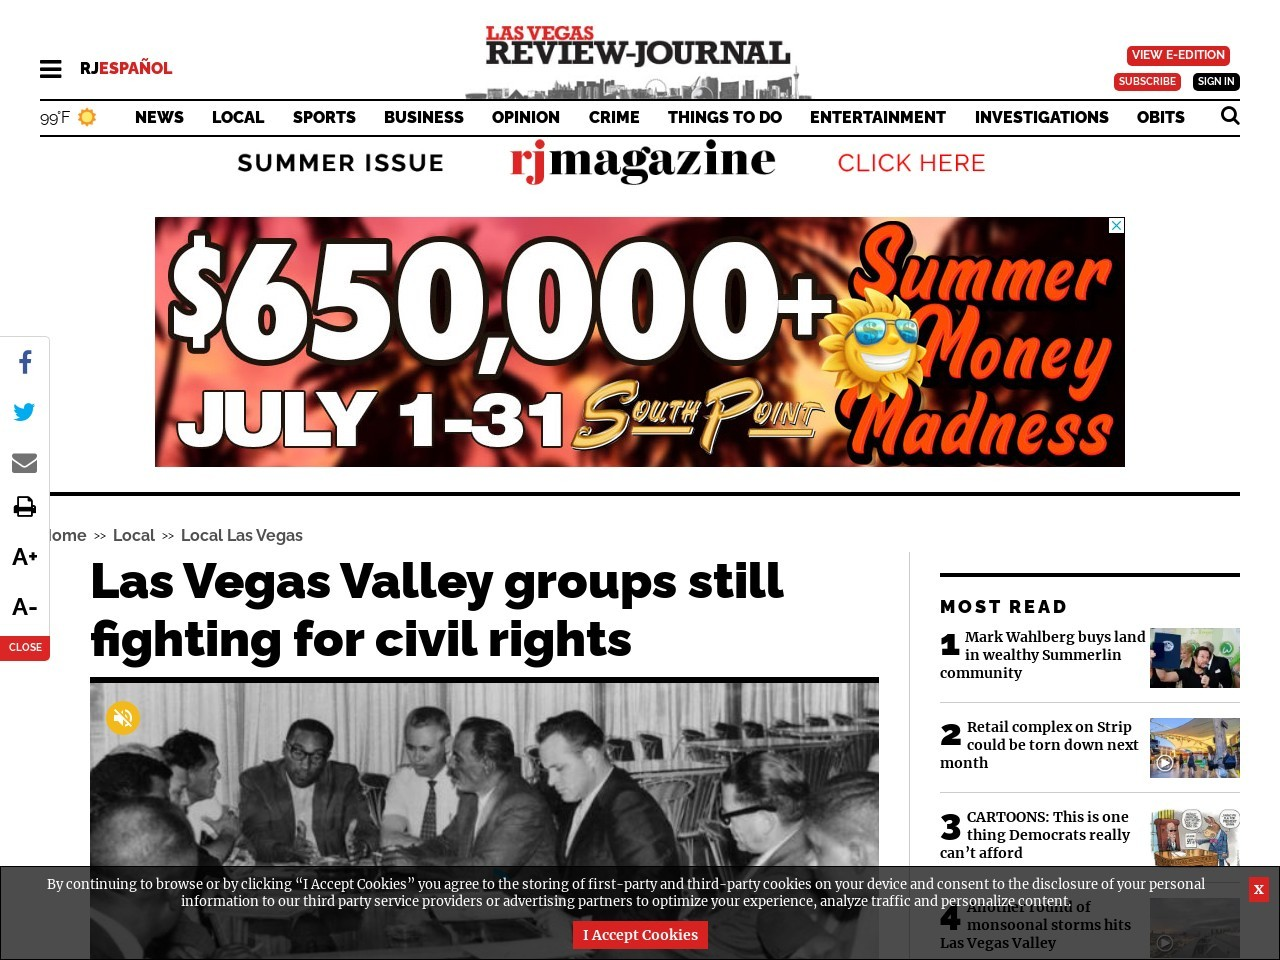 Las Vegas Valley groups still fighting for civil rights